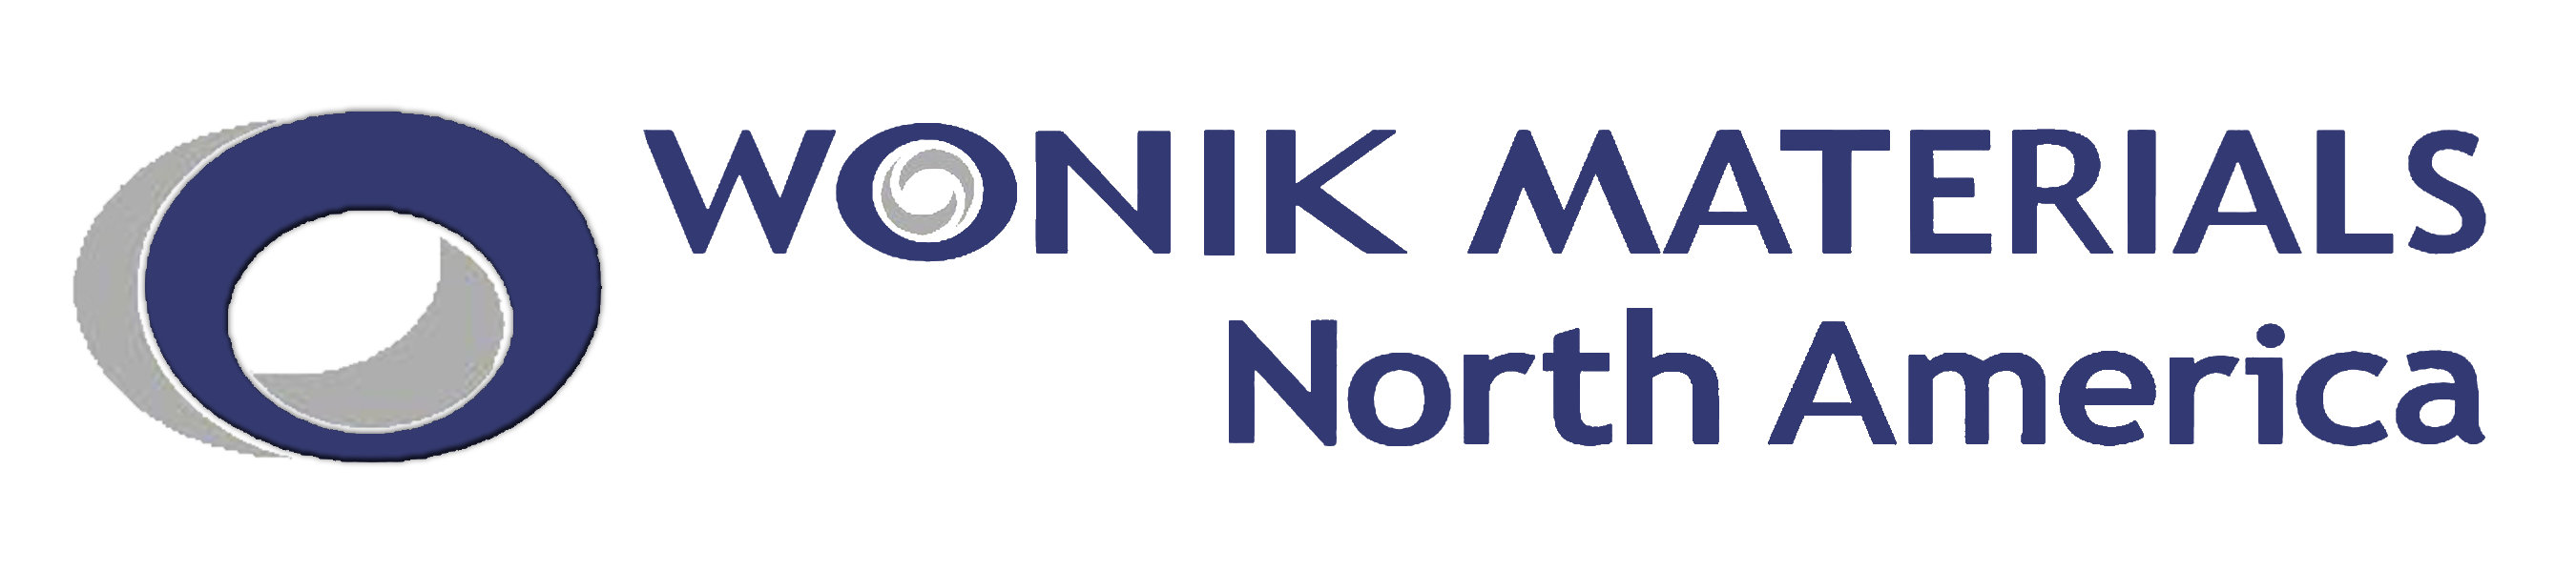 Wonik Materials North America